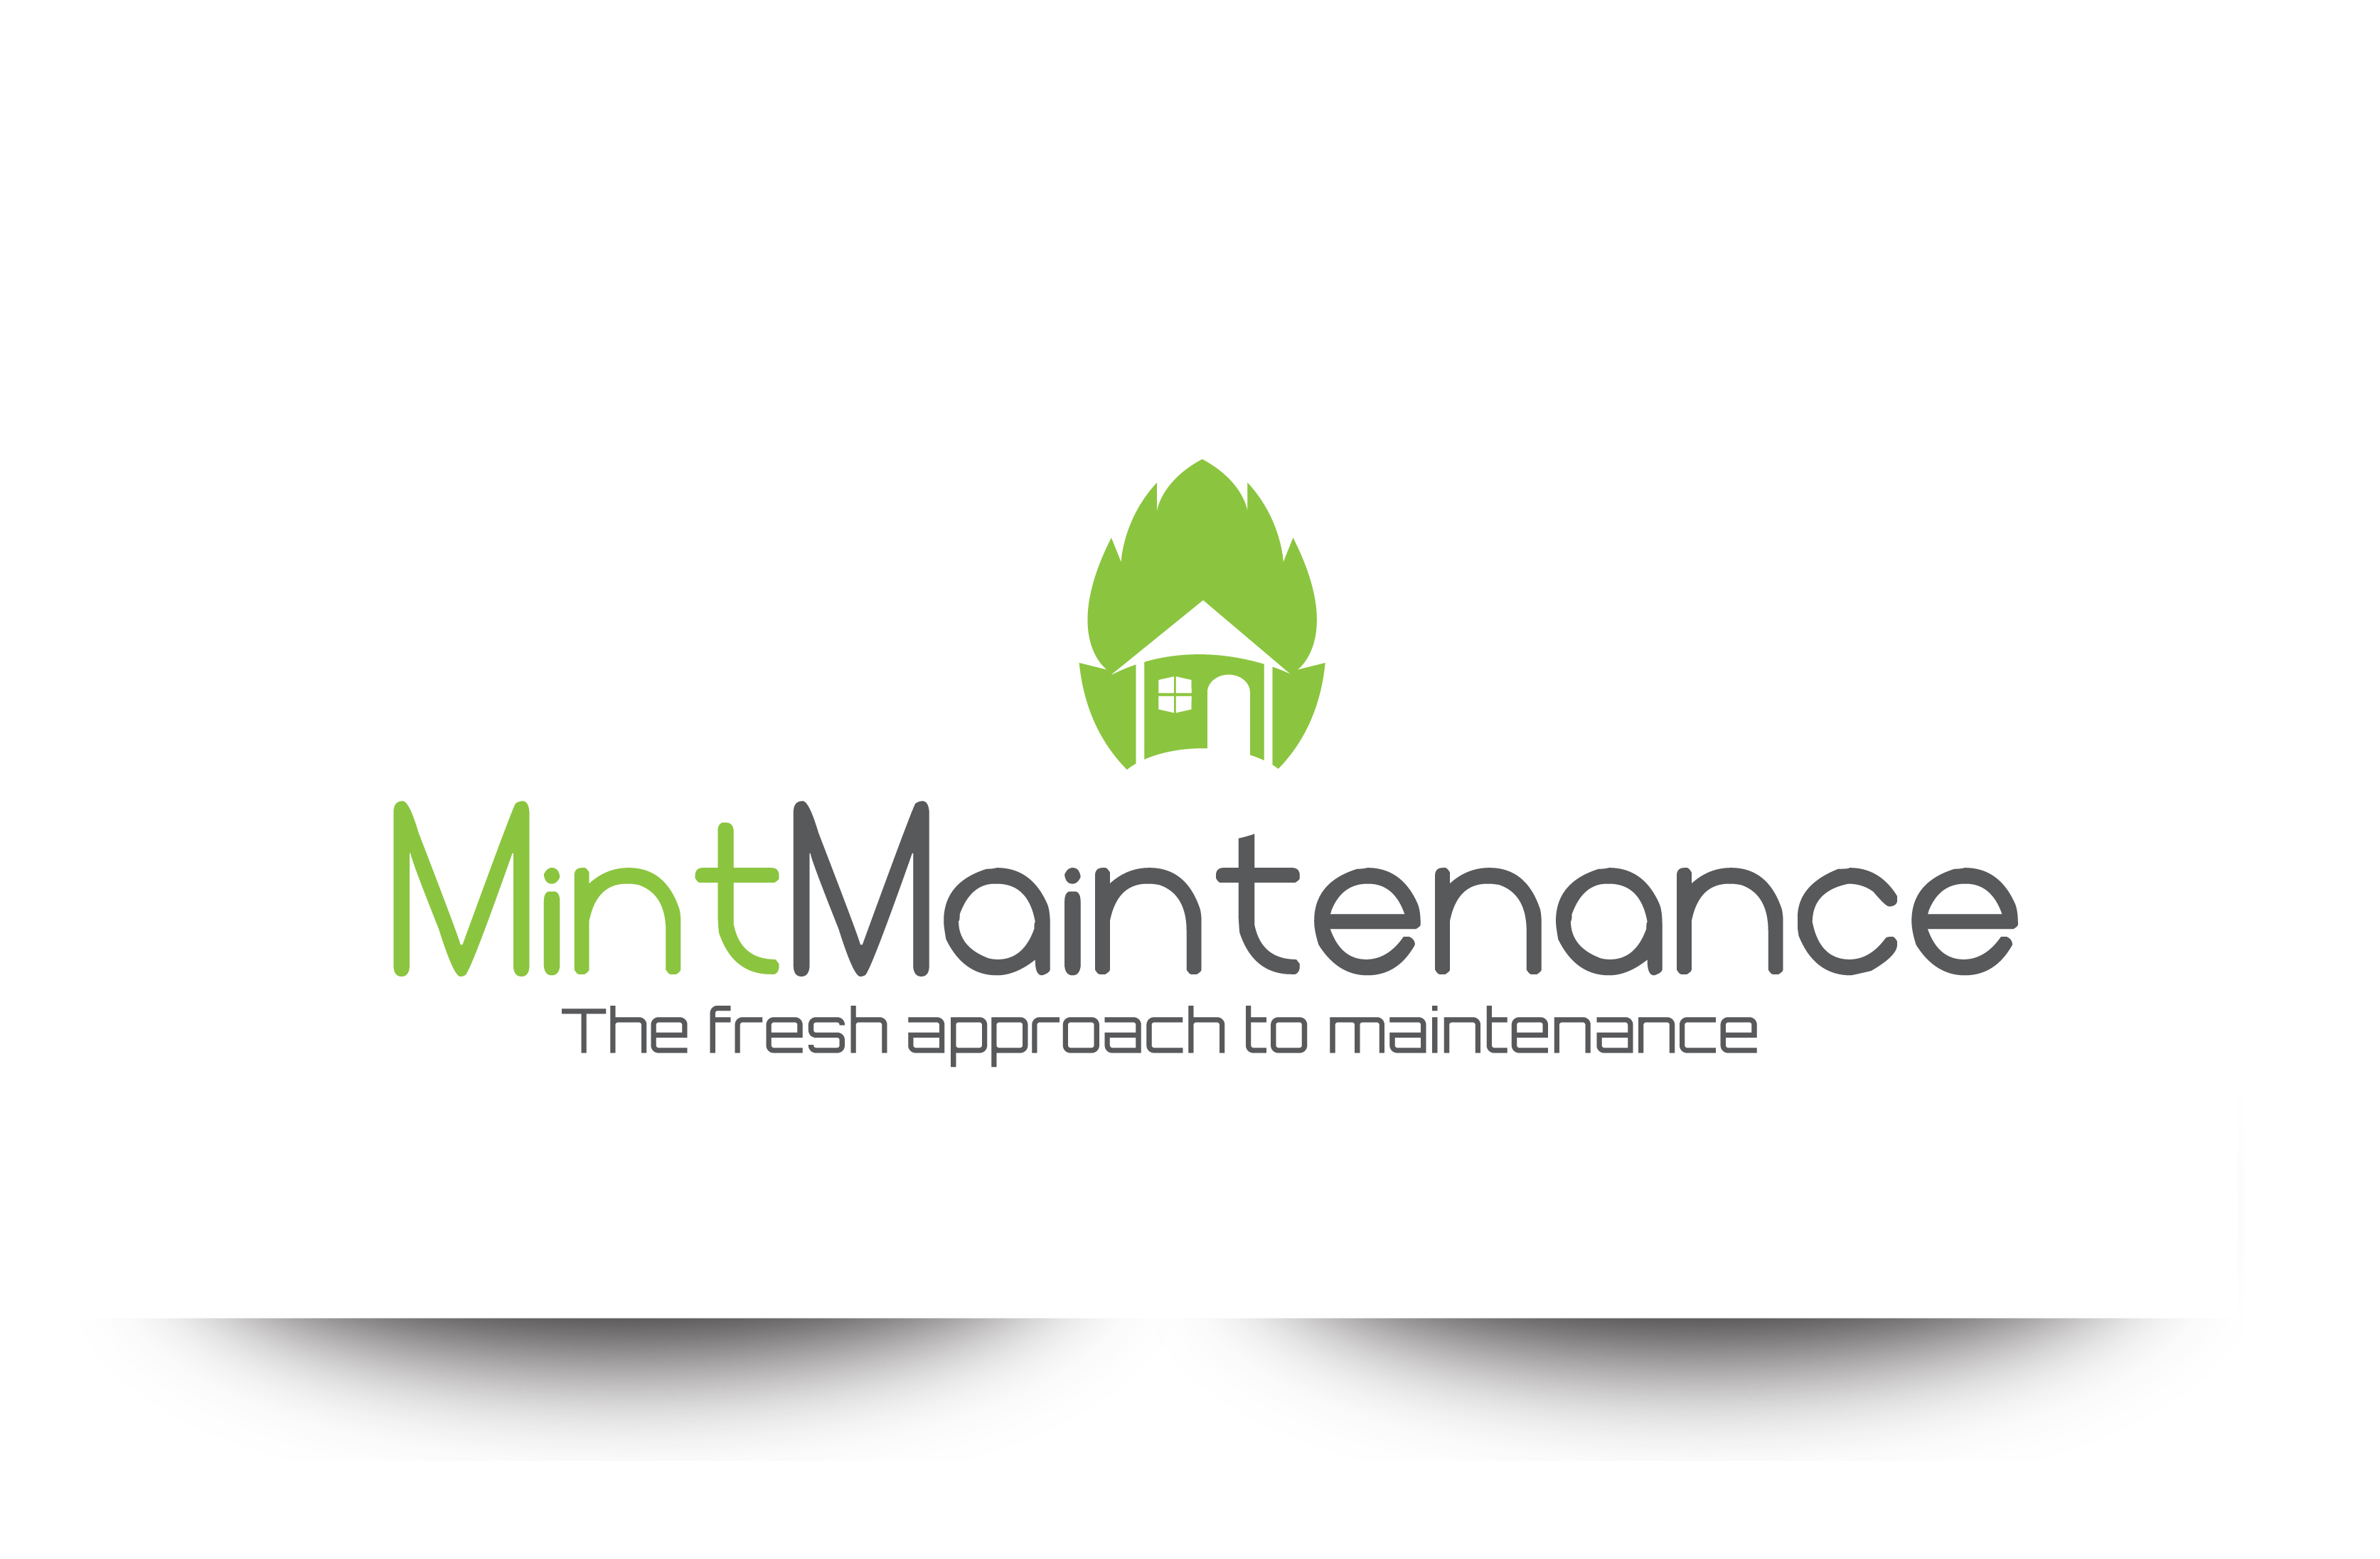 Logo Design by demang - Entry No. 206 in the Logo Design Contest Creative Logo Design for Mint Maintenance.